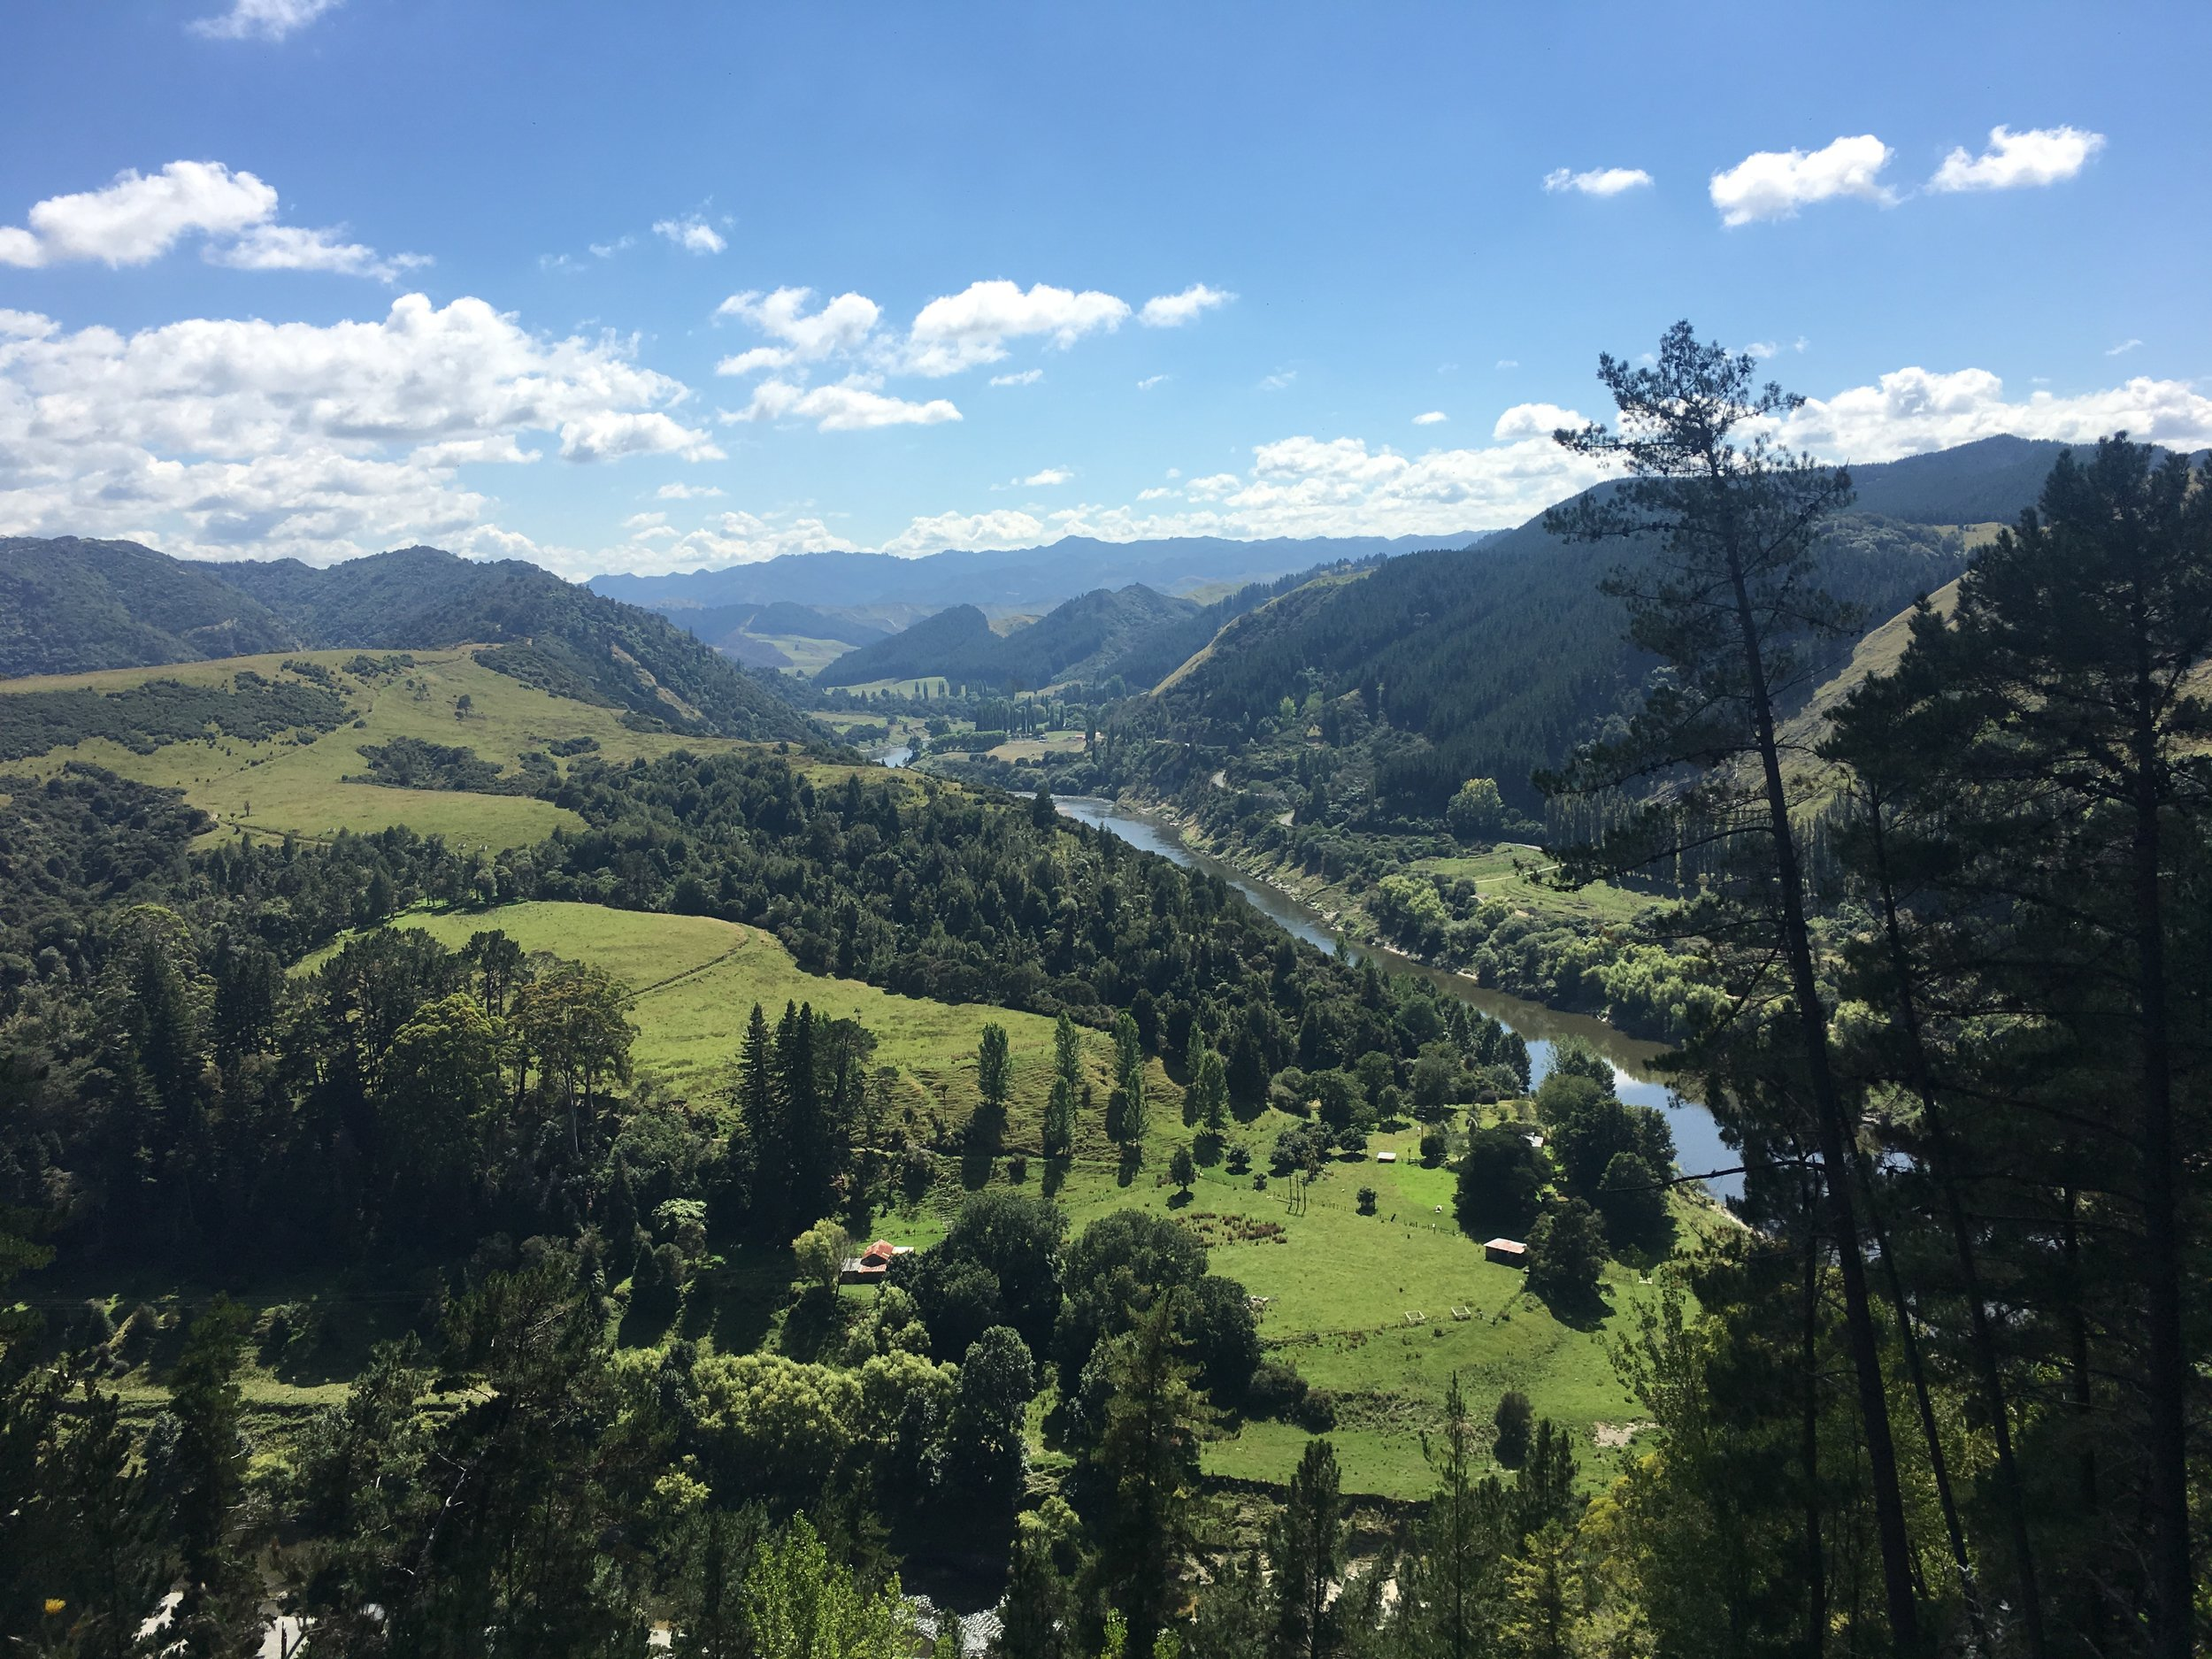 View of the Whanganui River from the top of the hill